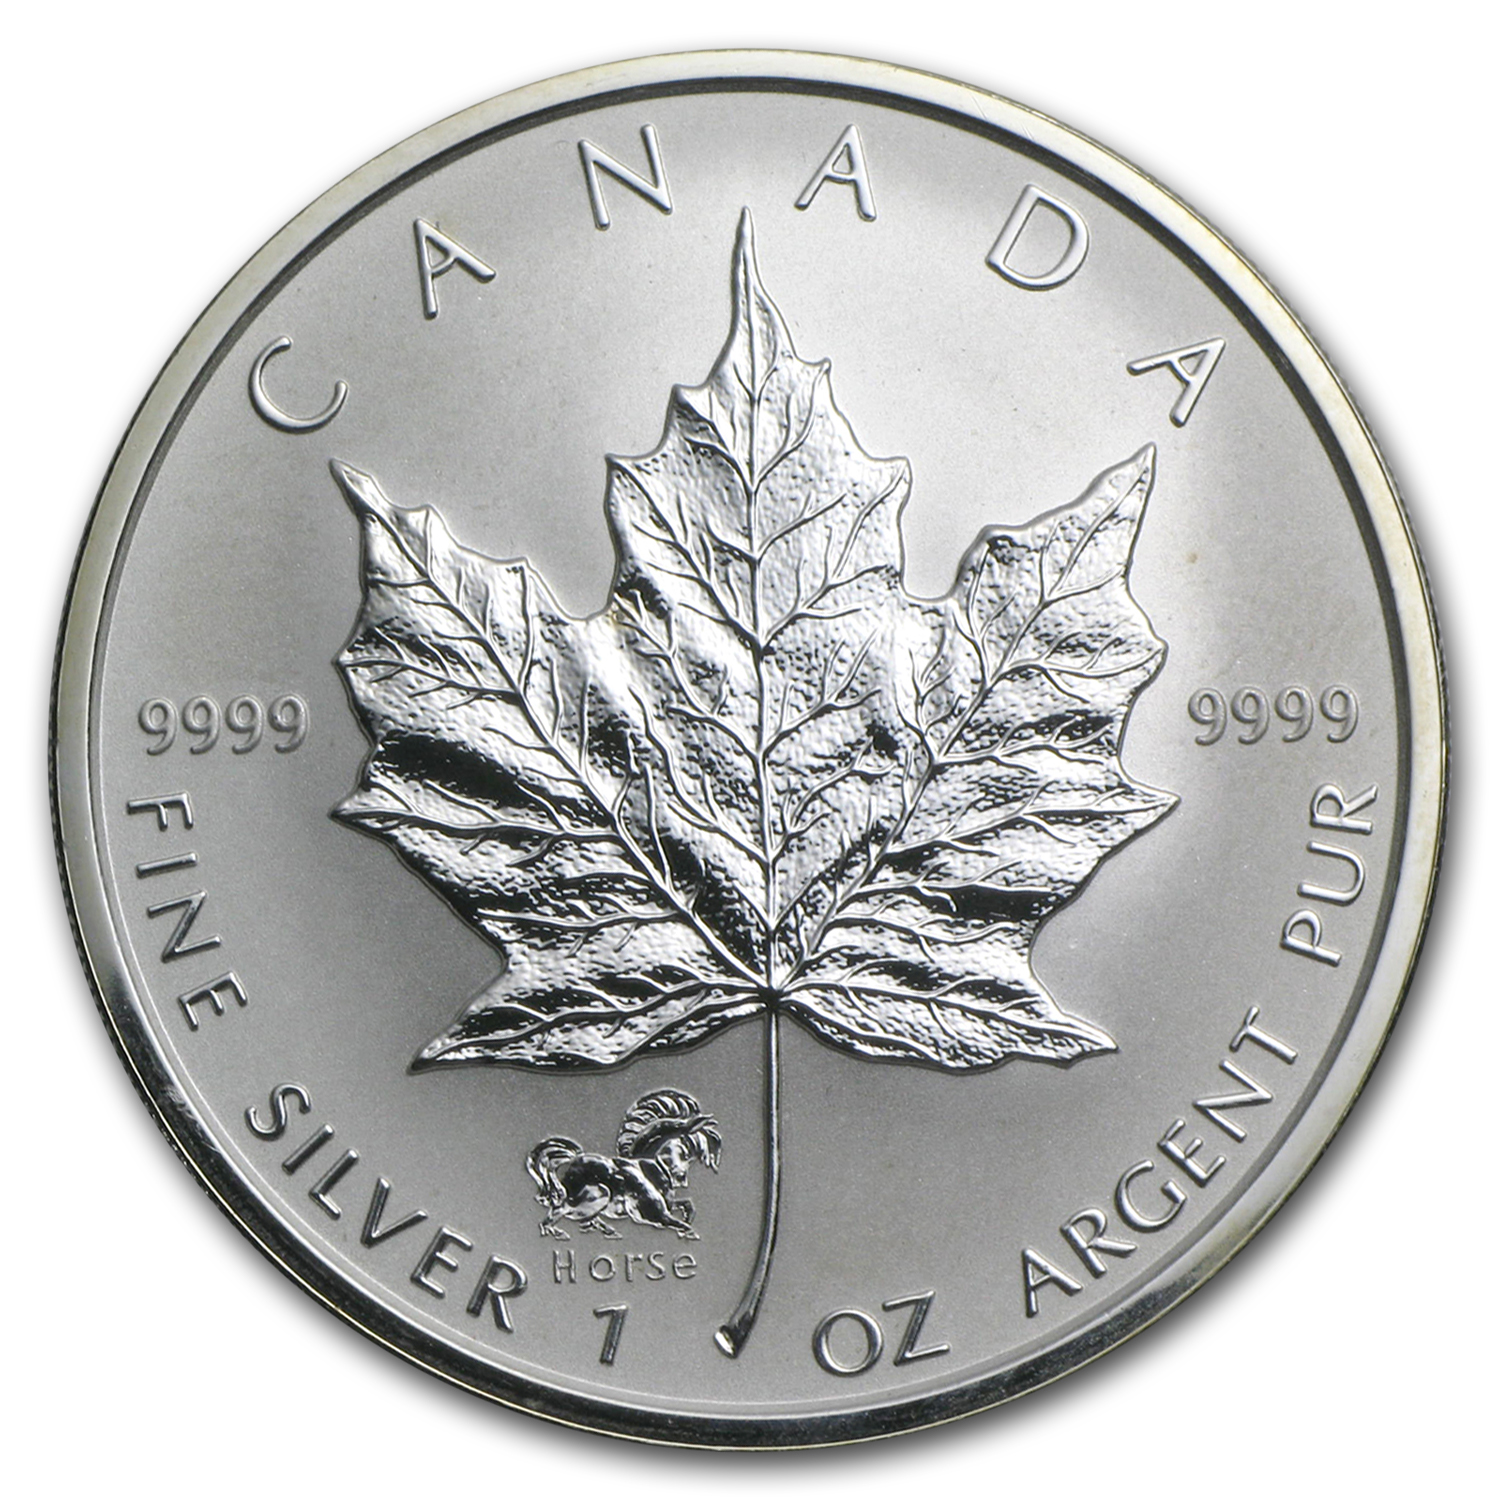 2002 1 oz Silver Canadian Maple Leaf Lunar HORSE Privy